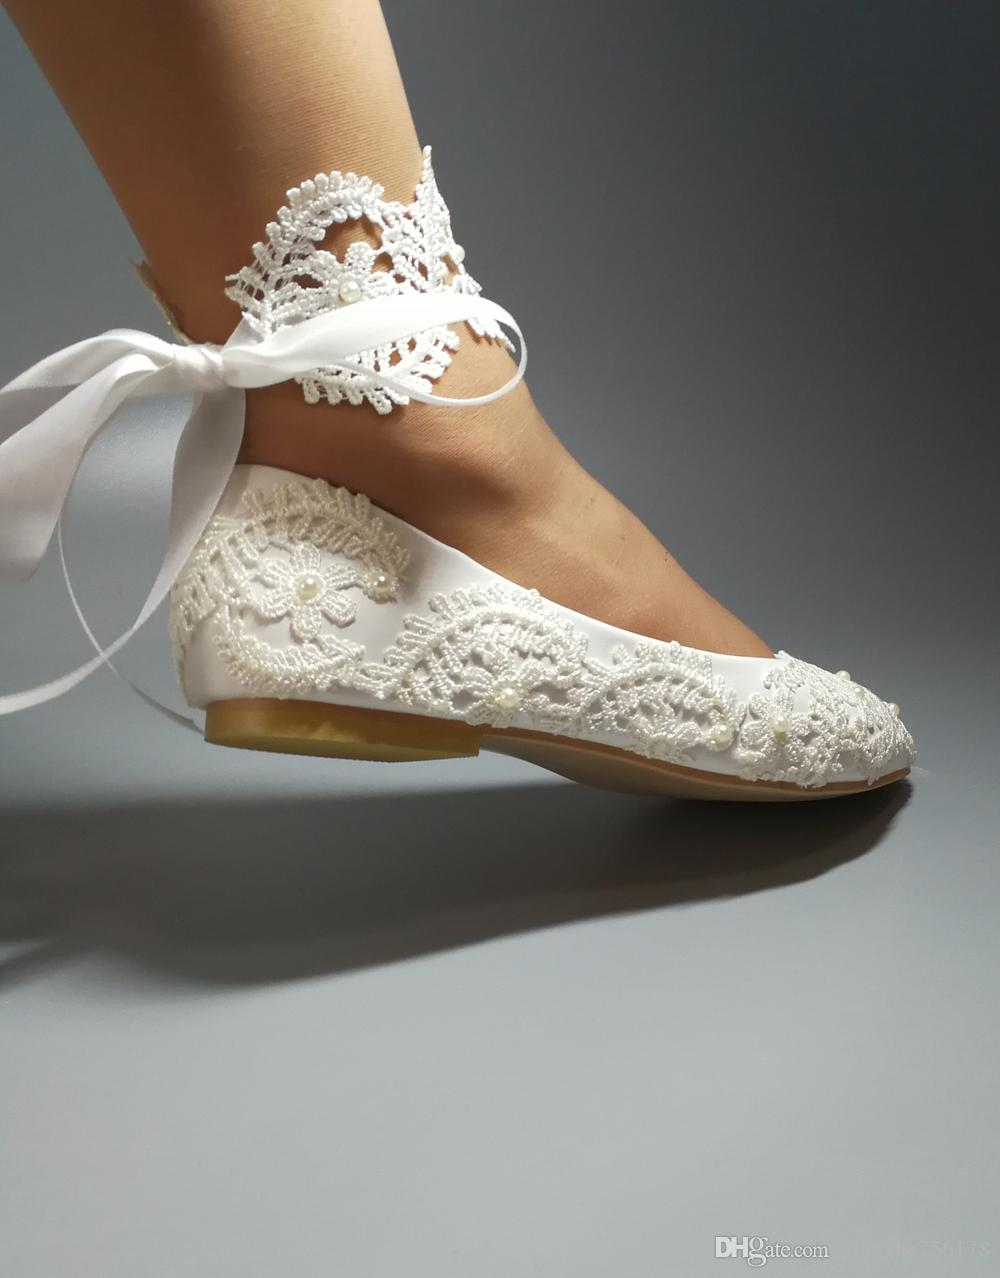 Handmade Shoes Wedding Waterproof White Bride Dresses Han Edition Diamond Lace Manual Flat Shoe Female Butterfly Canada 2019 From: Dress Flat Wedding Shoes At Websimilar.org